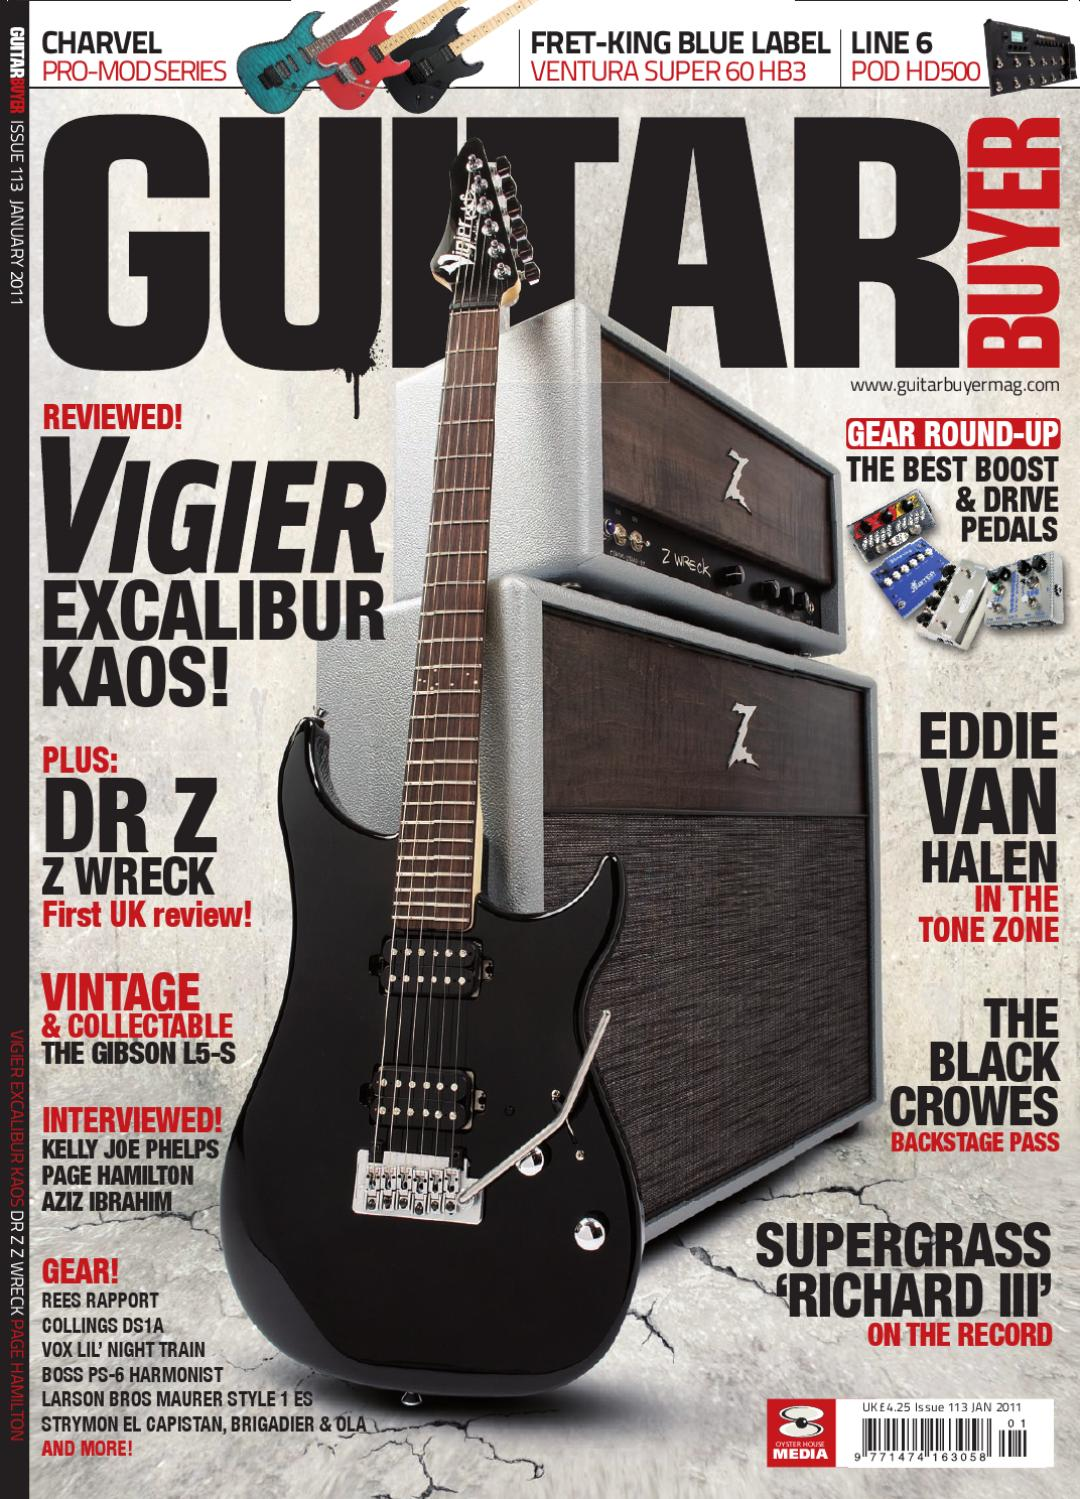 Guitar Buyer Magazine 113 by Oyster House Media - issuu